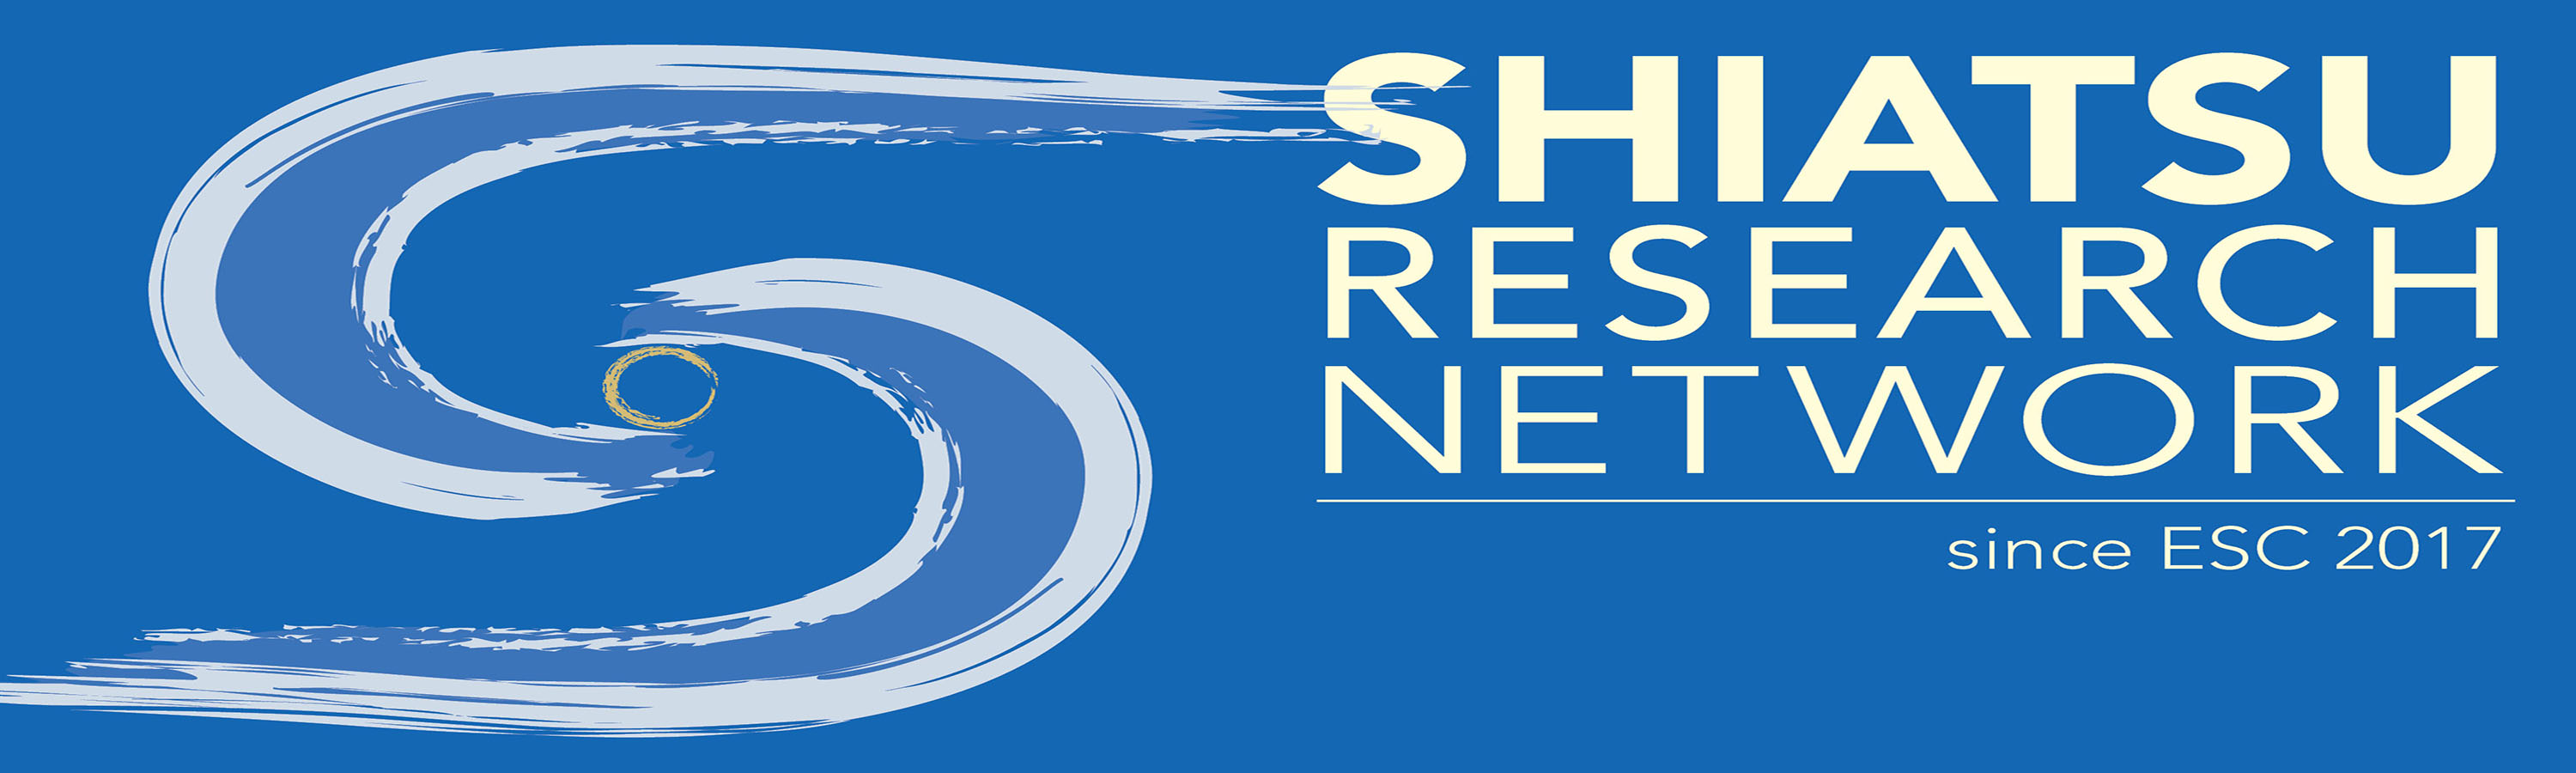 Shiatsu Research Network